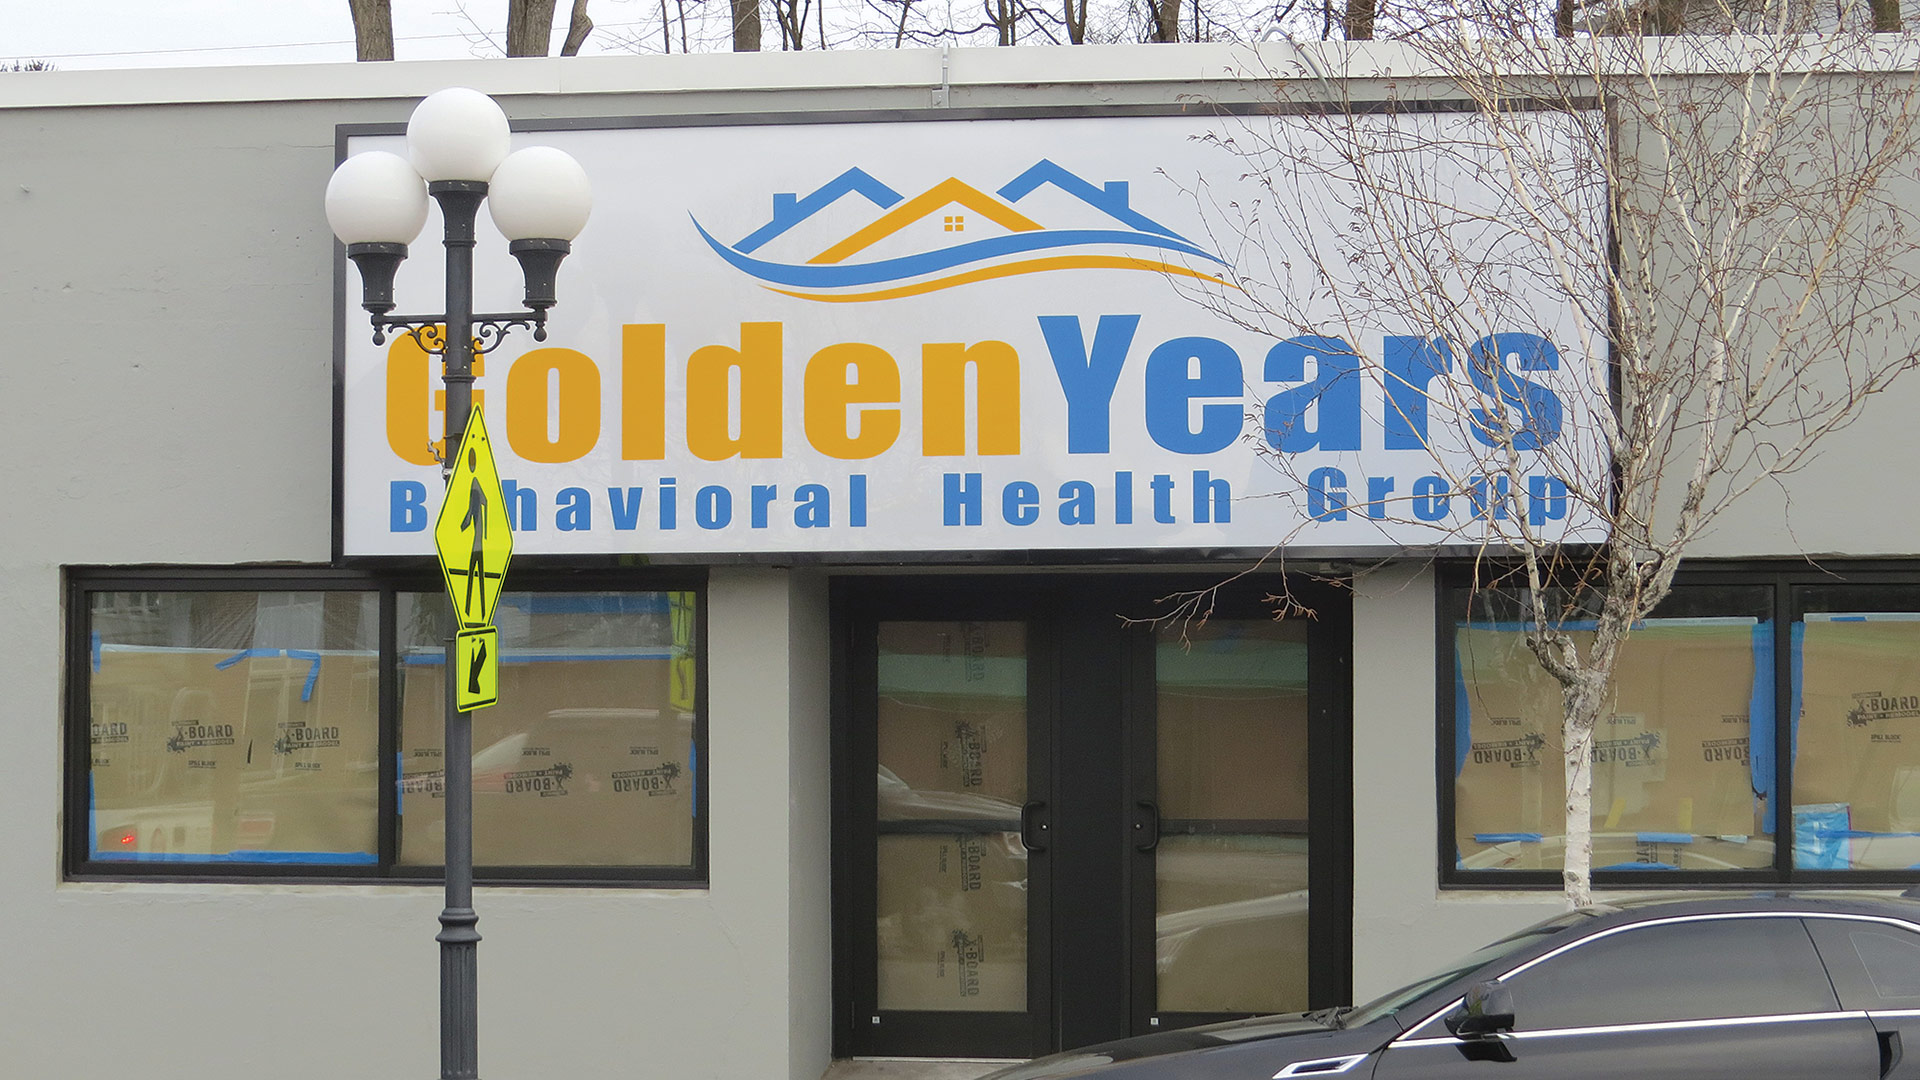 The sign on the property in East Longmeadow's center announced the arrival of the Golden Years Behavioral Health Group, one of many indicators of growth at this company.